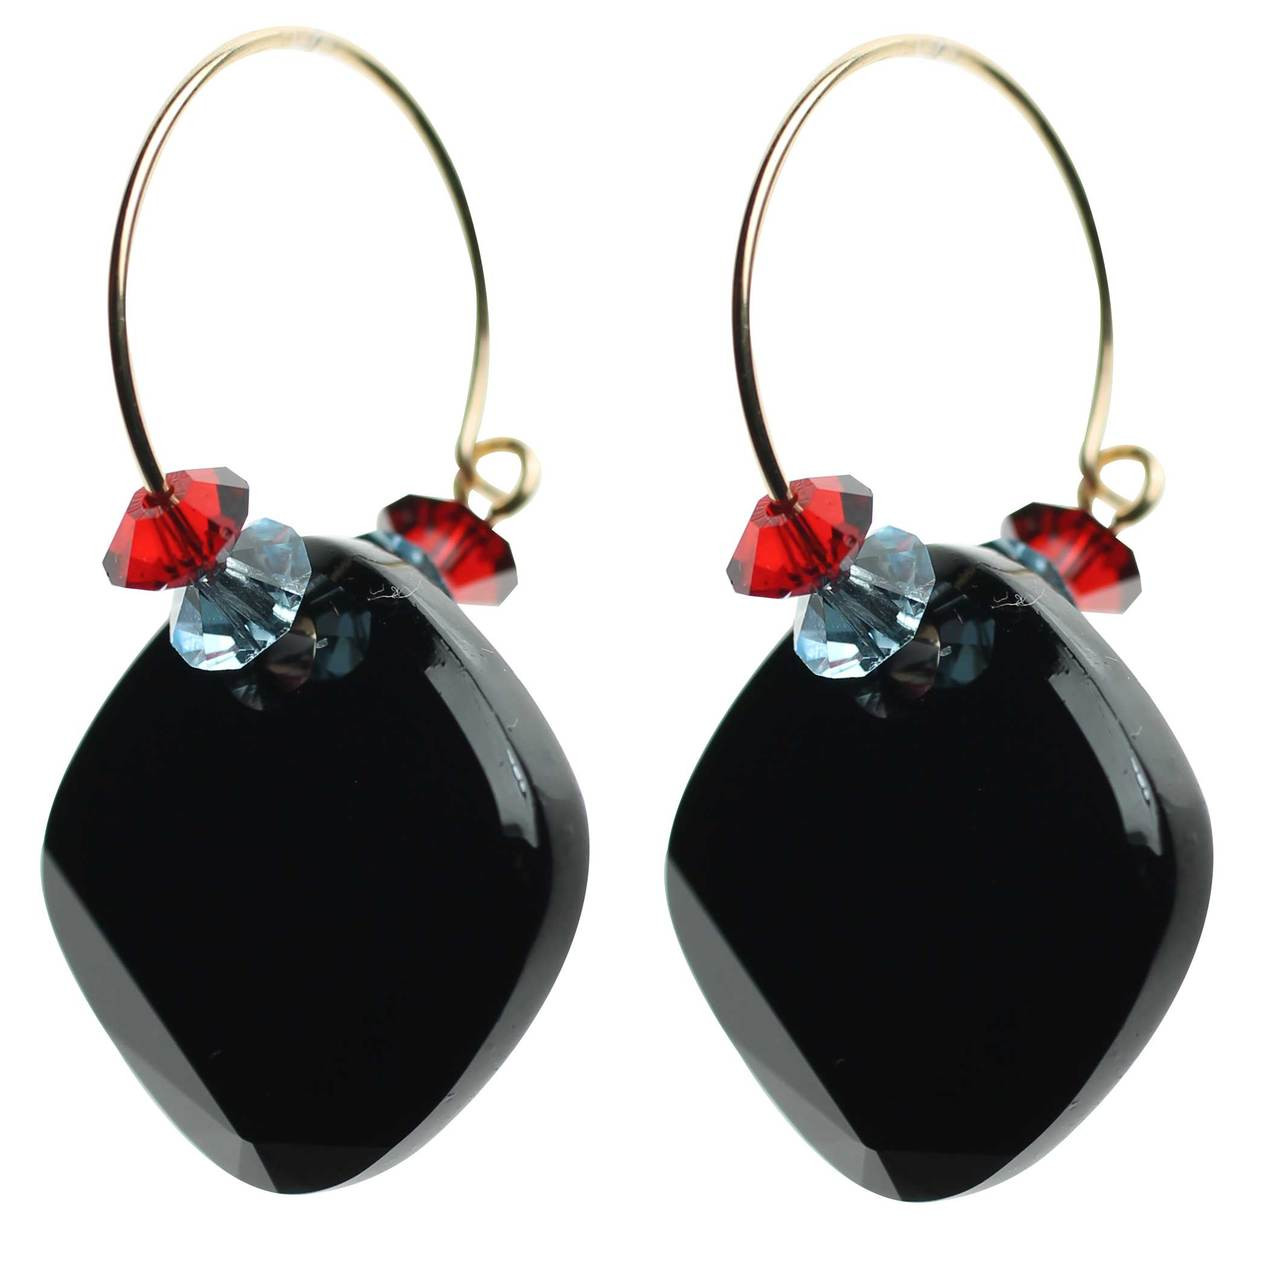 39c7b55b76f38 Jet Black Square shaped Hoop Earrings • Modern and Vintage Crystals from  Swarovski • 14K Gold Filled Metal • Navajo Collection